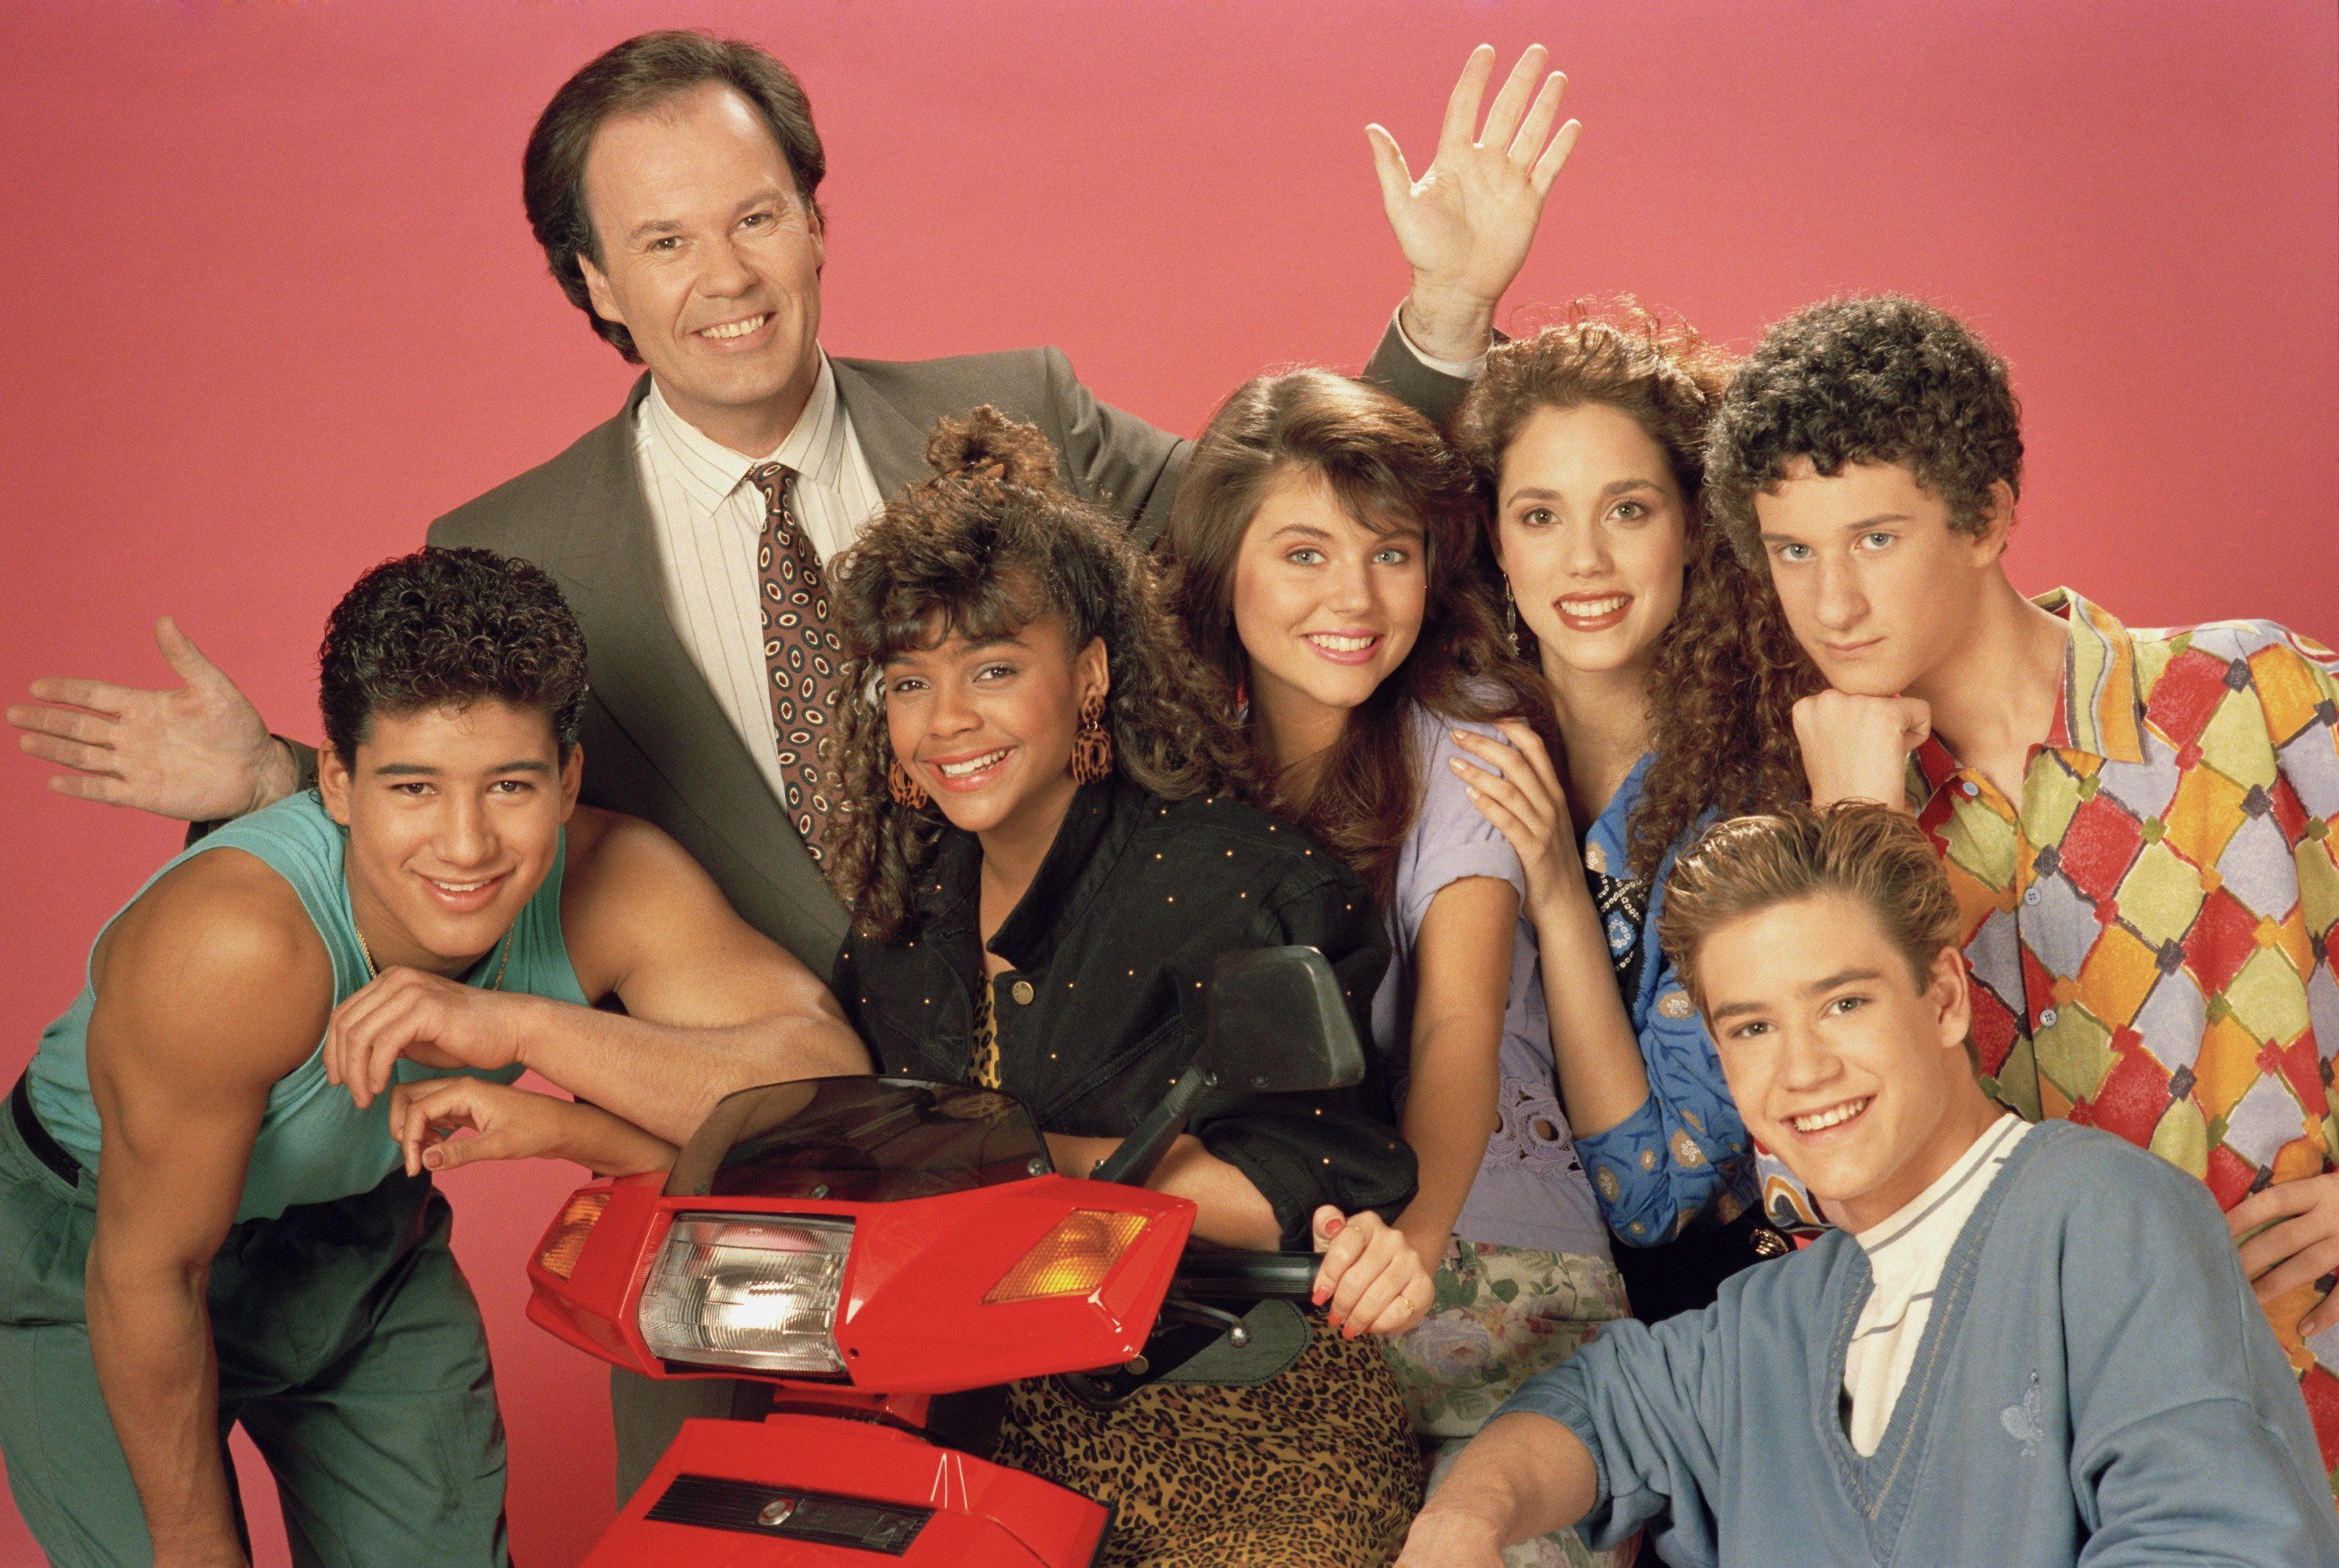 Saved By The Bell Reboot In Works With Mario Lopez And Elizabeth